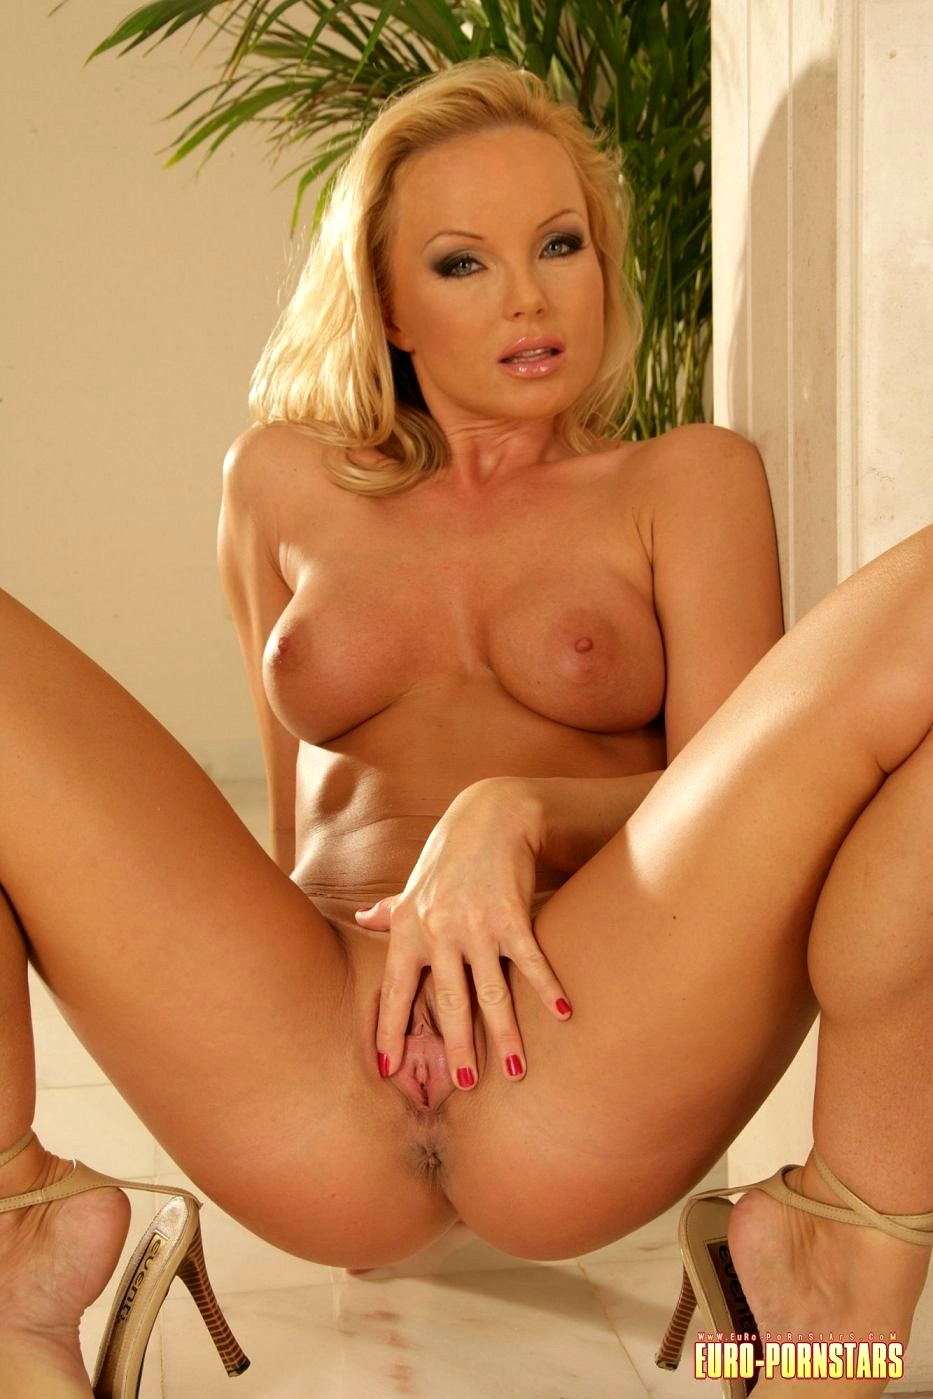 Can Silvia saint sex pics was and